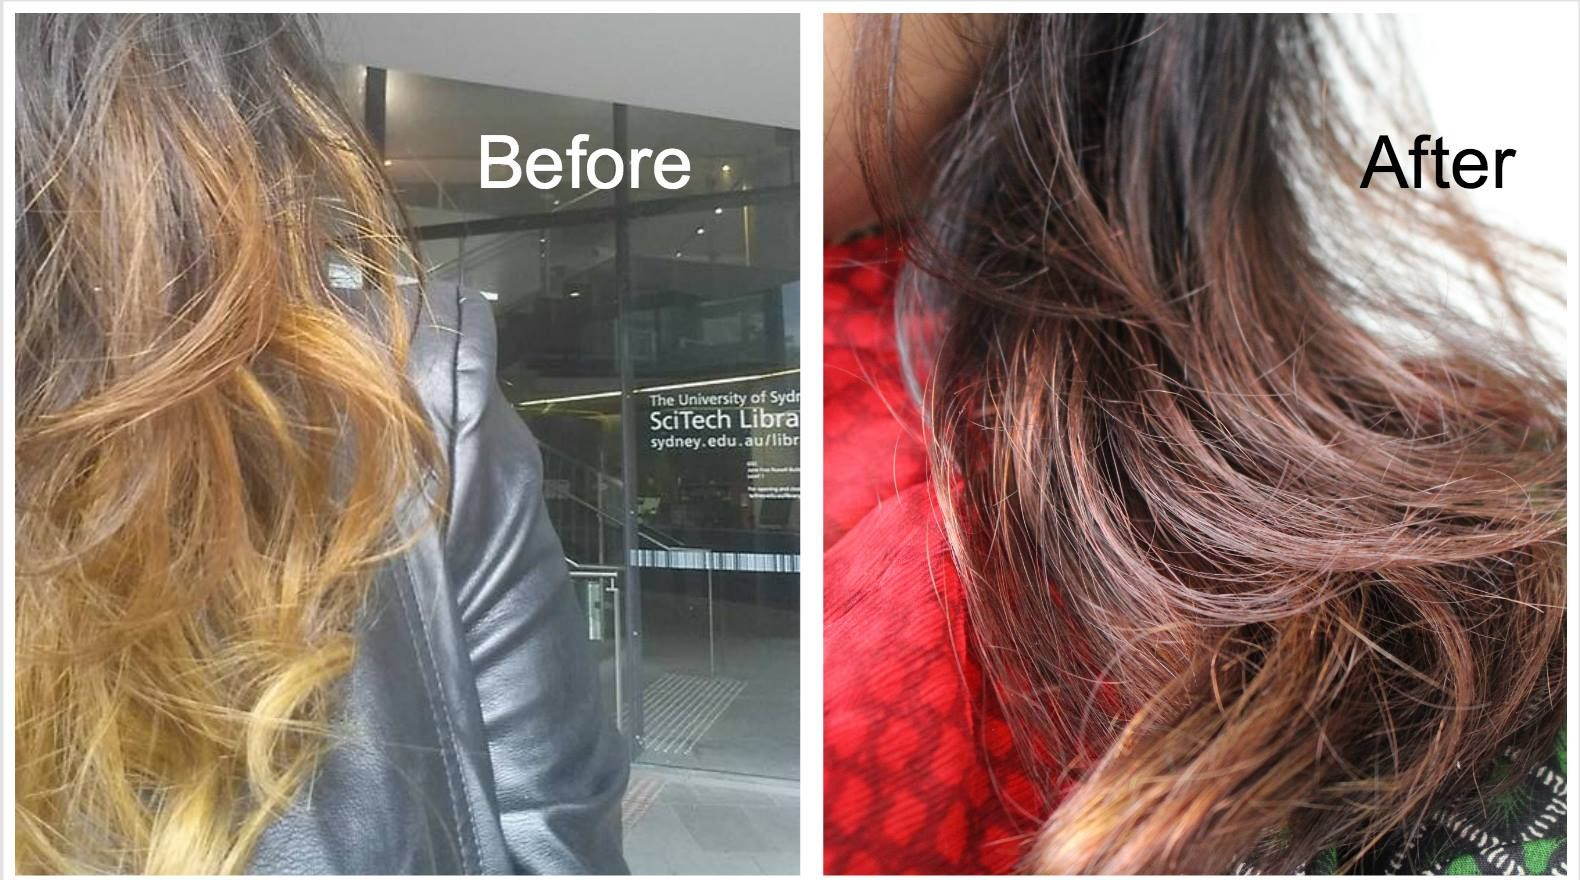 Loreal Casting Creme Hair Colour In Shade 535 Chocolate Before And After Loreal Hair Color Hair Color Loreal Hair